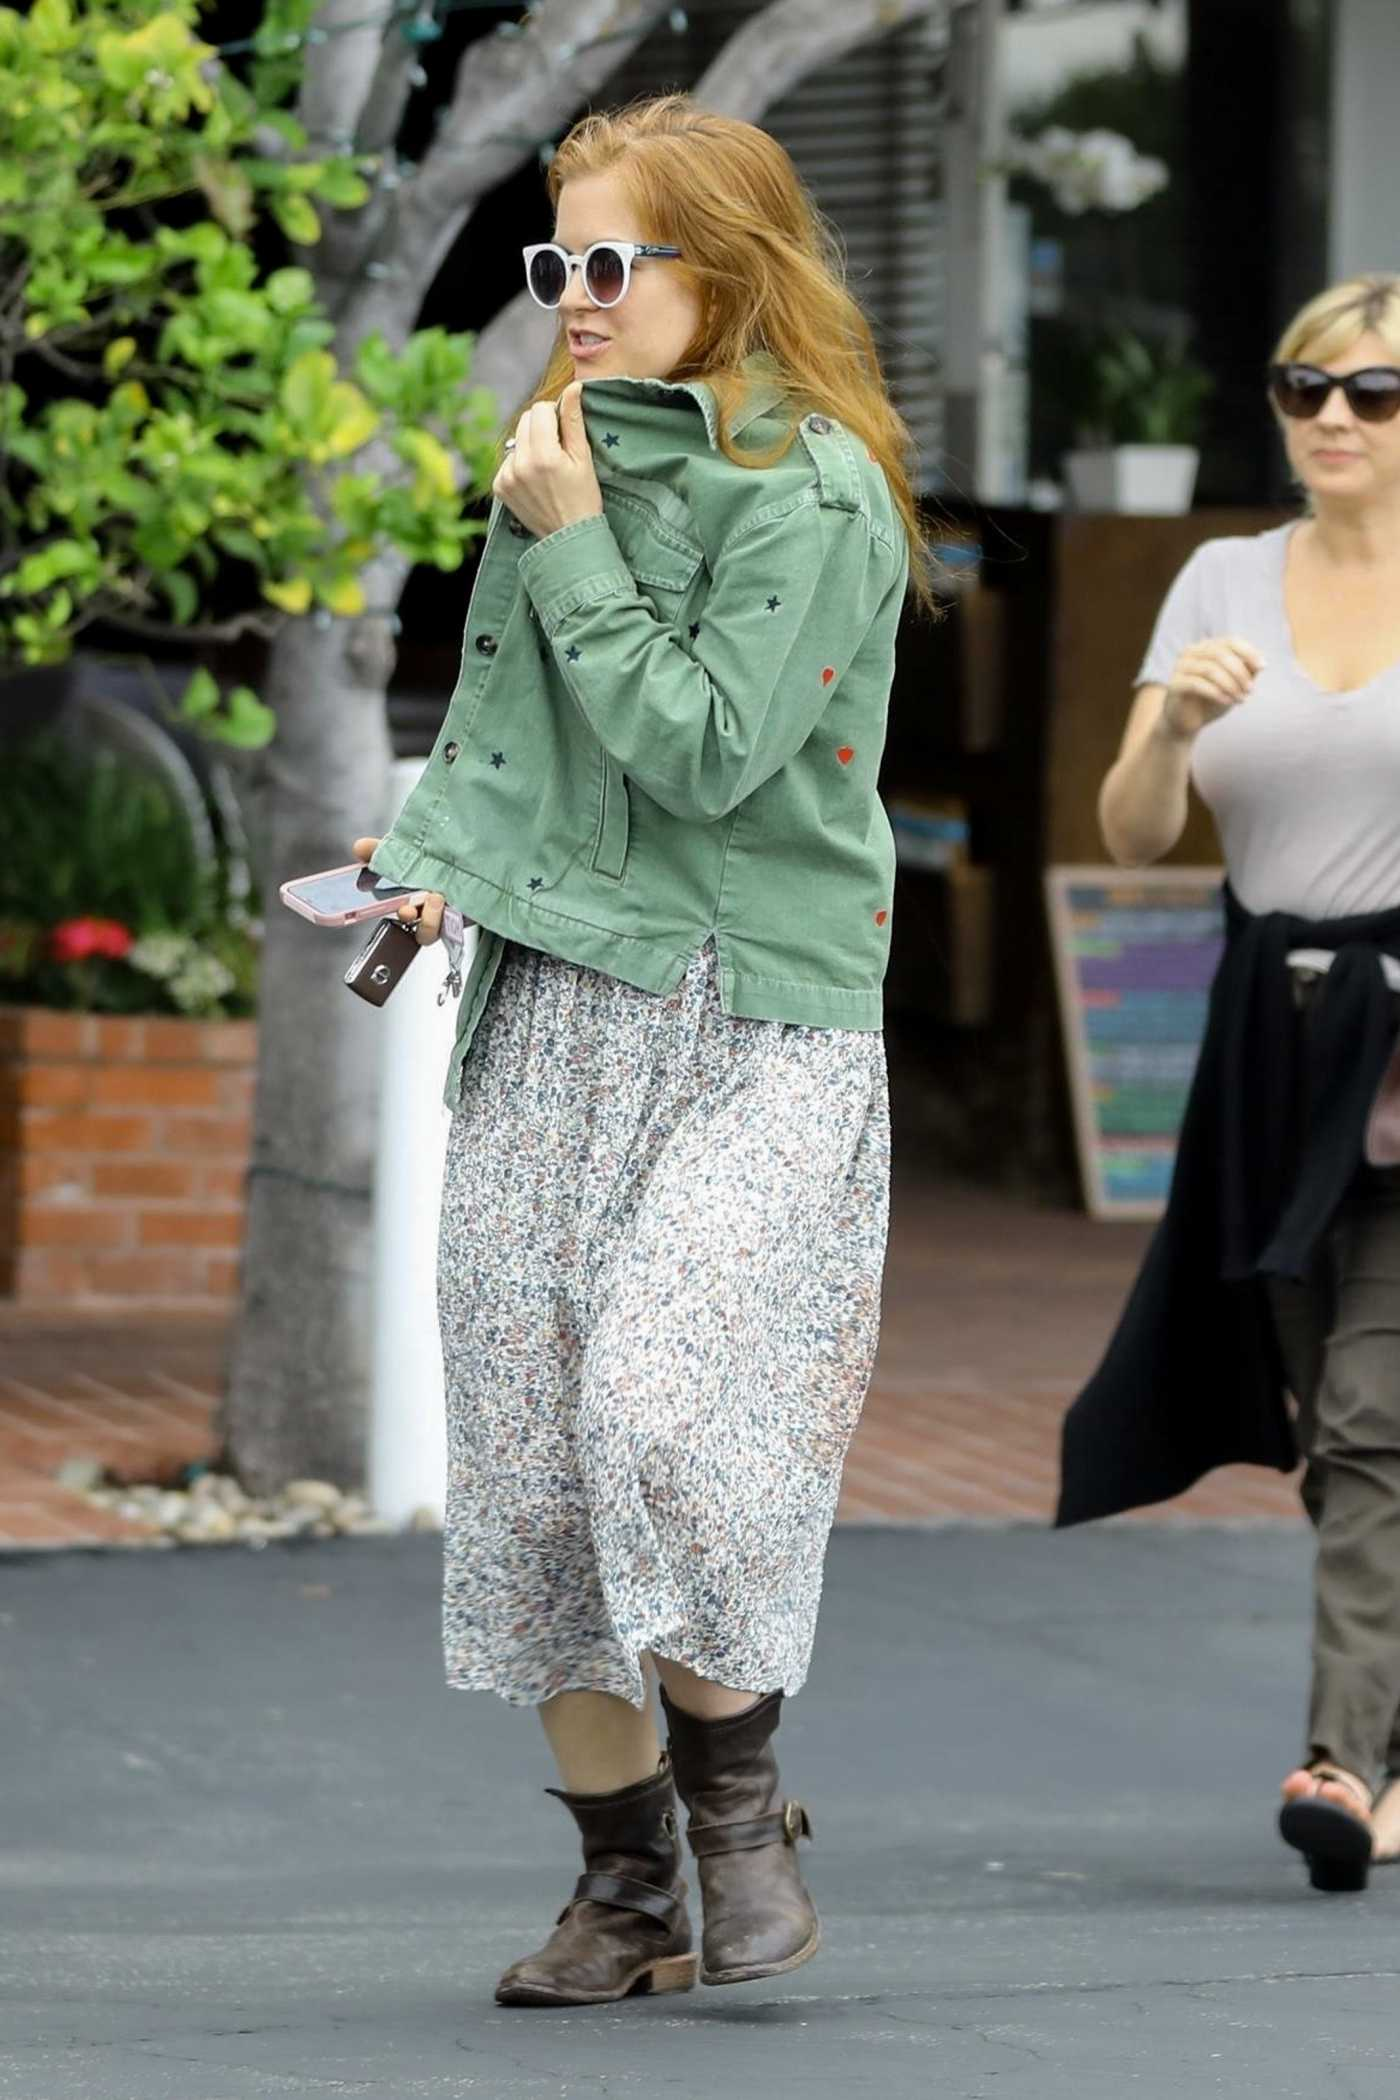 Isla Fisher in a Green Jacket Goes to Lunch with a Friend at Fred Segal Mauro's Restaurant in West Hollywood 05/09/2019